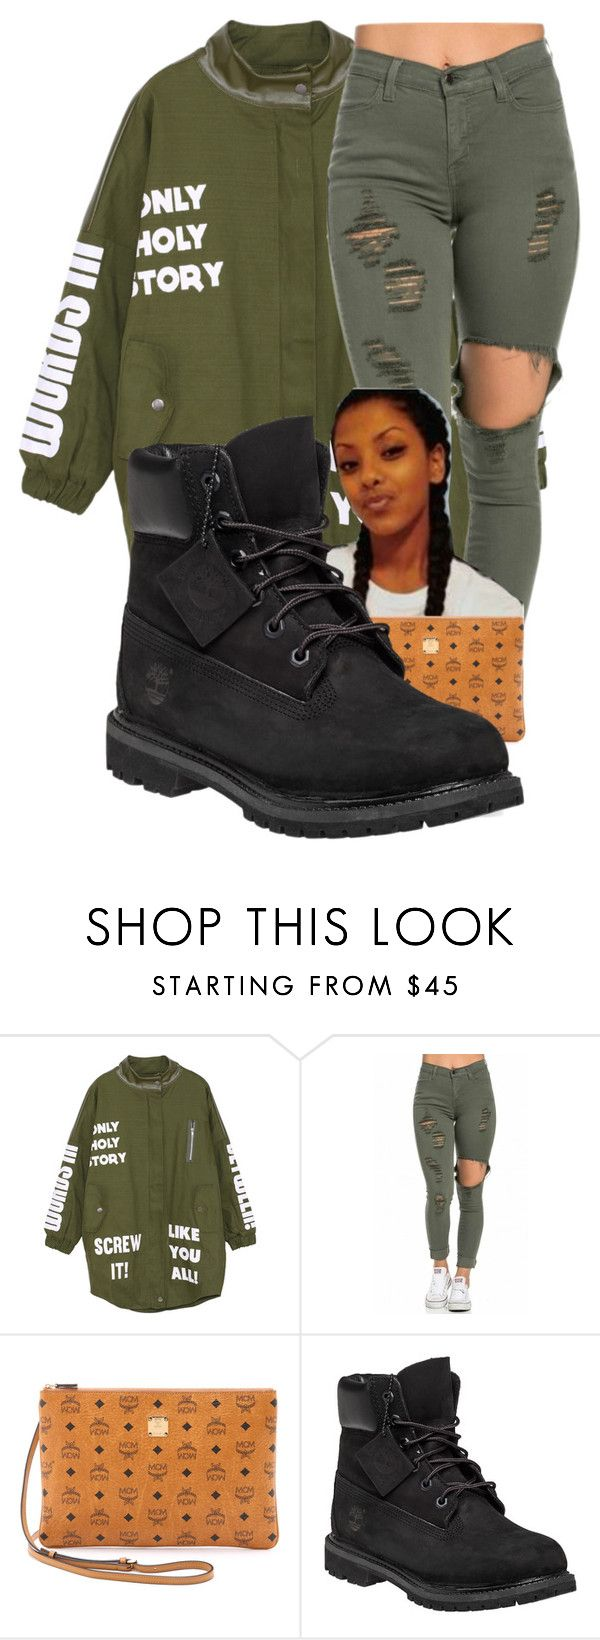 """With Cousin"" by shamyadanyel ❤ liked on Polyvore featuring MCM, Timberland, women's clothing, women, female, woman, misses and juniors"